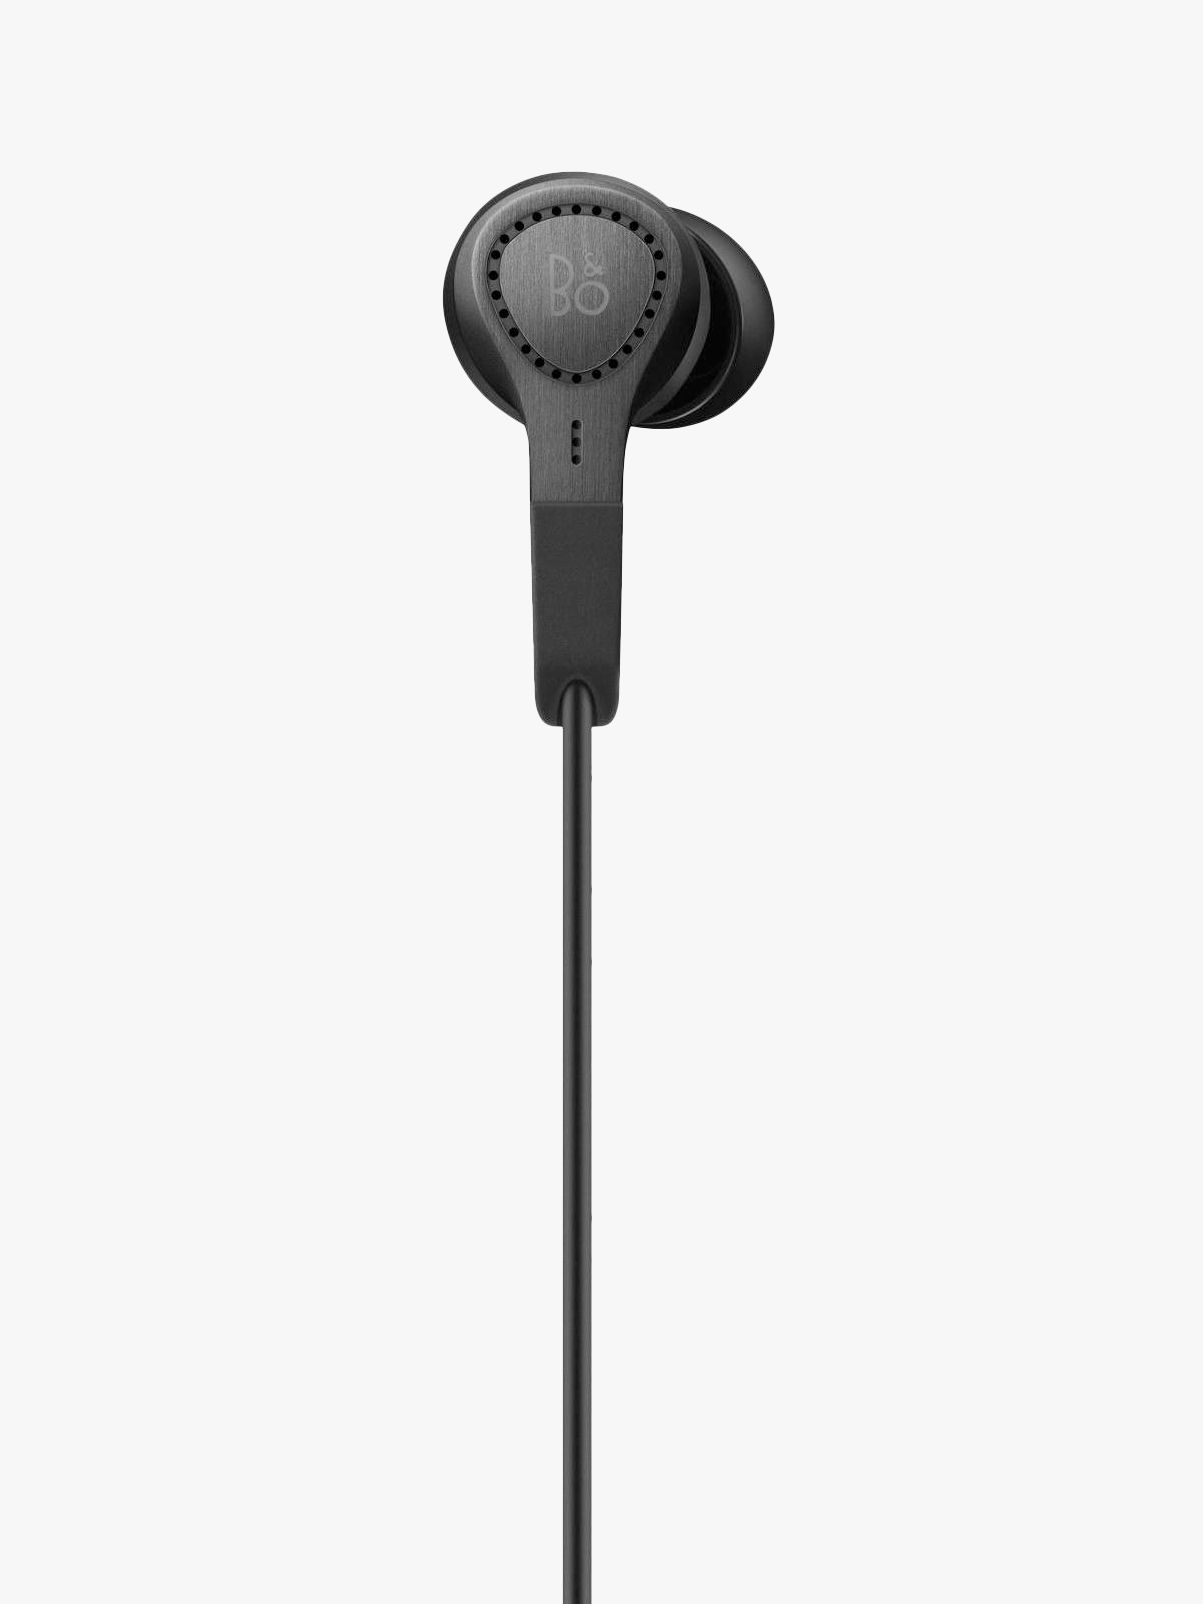 142cf549a5c Bang & Olufsen Beoplay E4 Active Noise Cancelling In-Ear Headphones with  Inline Mic/Remote for iOS Devices, Black at John Lewis & Partners